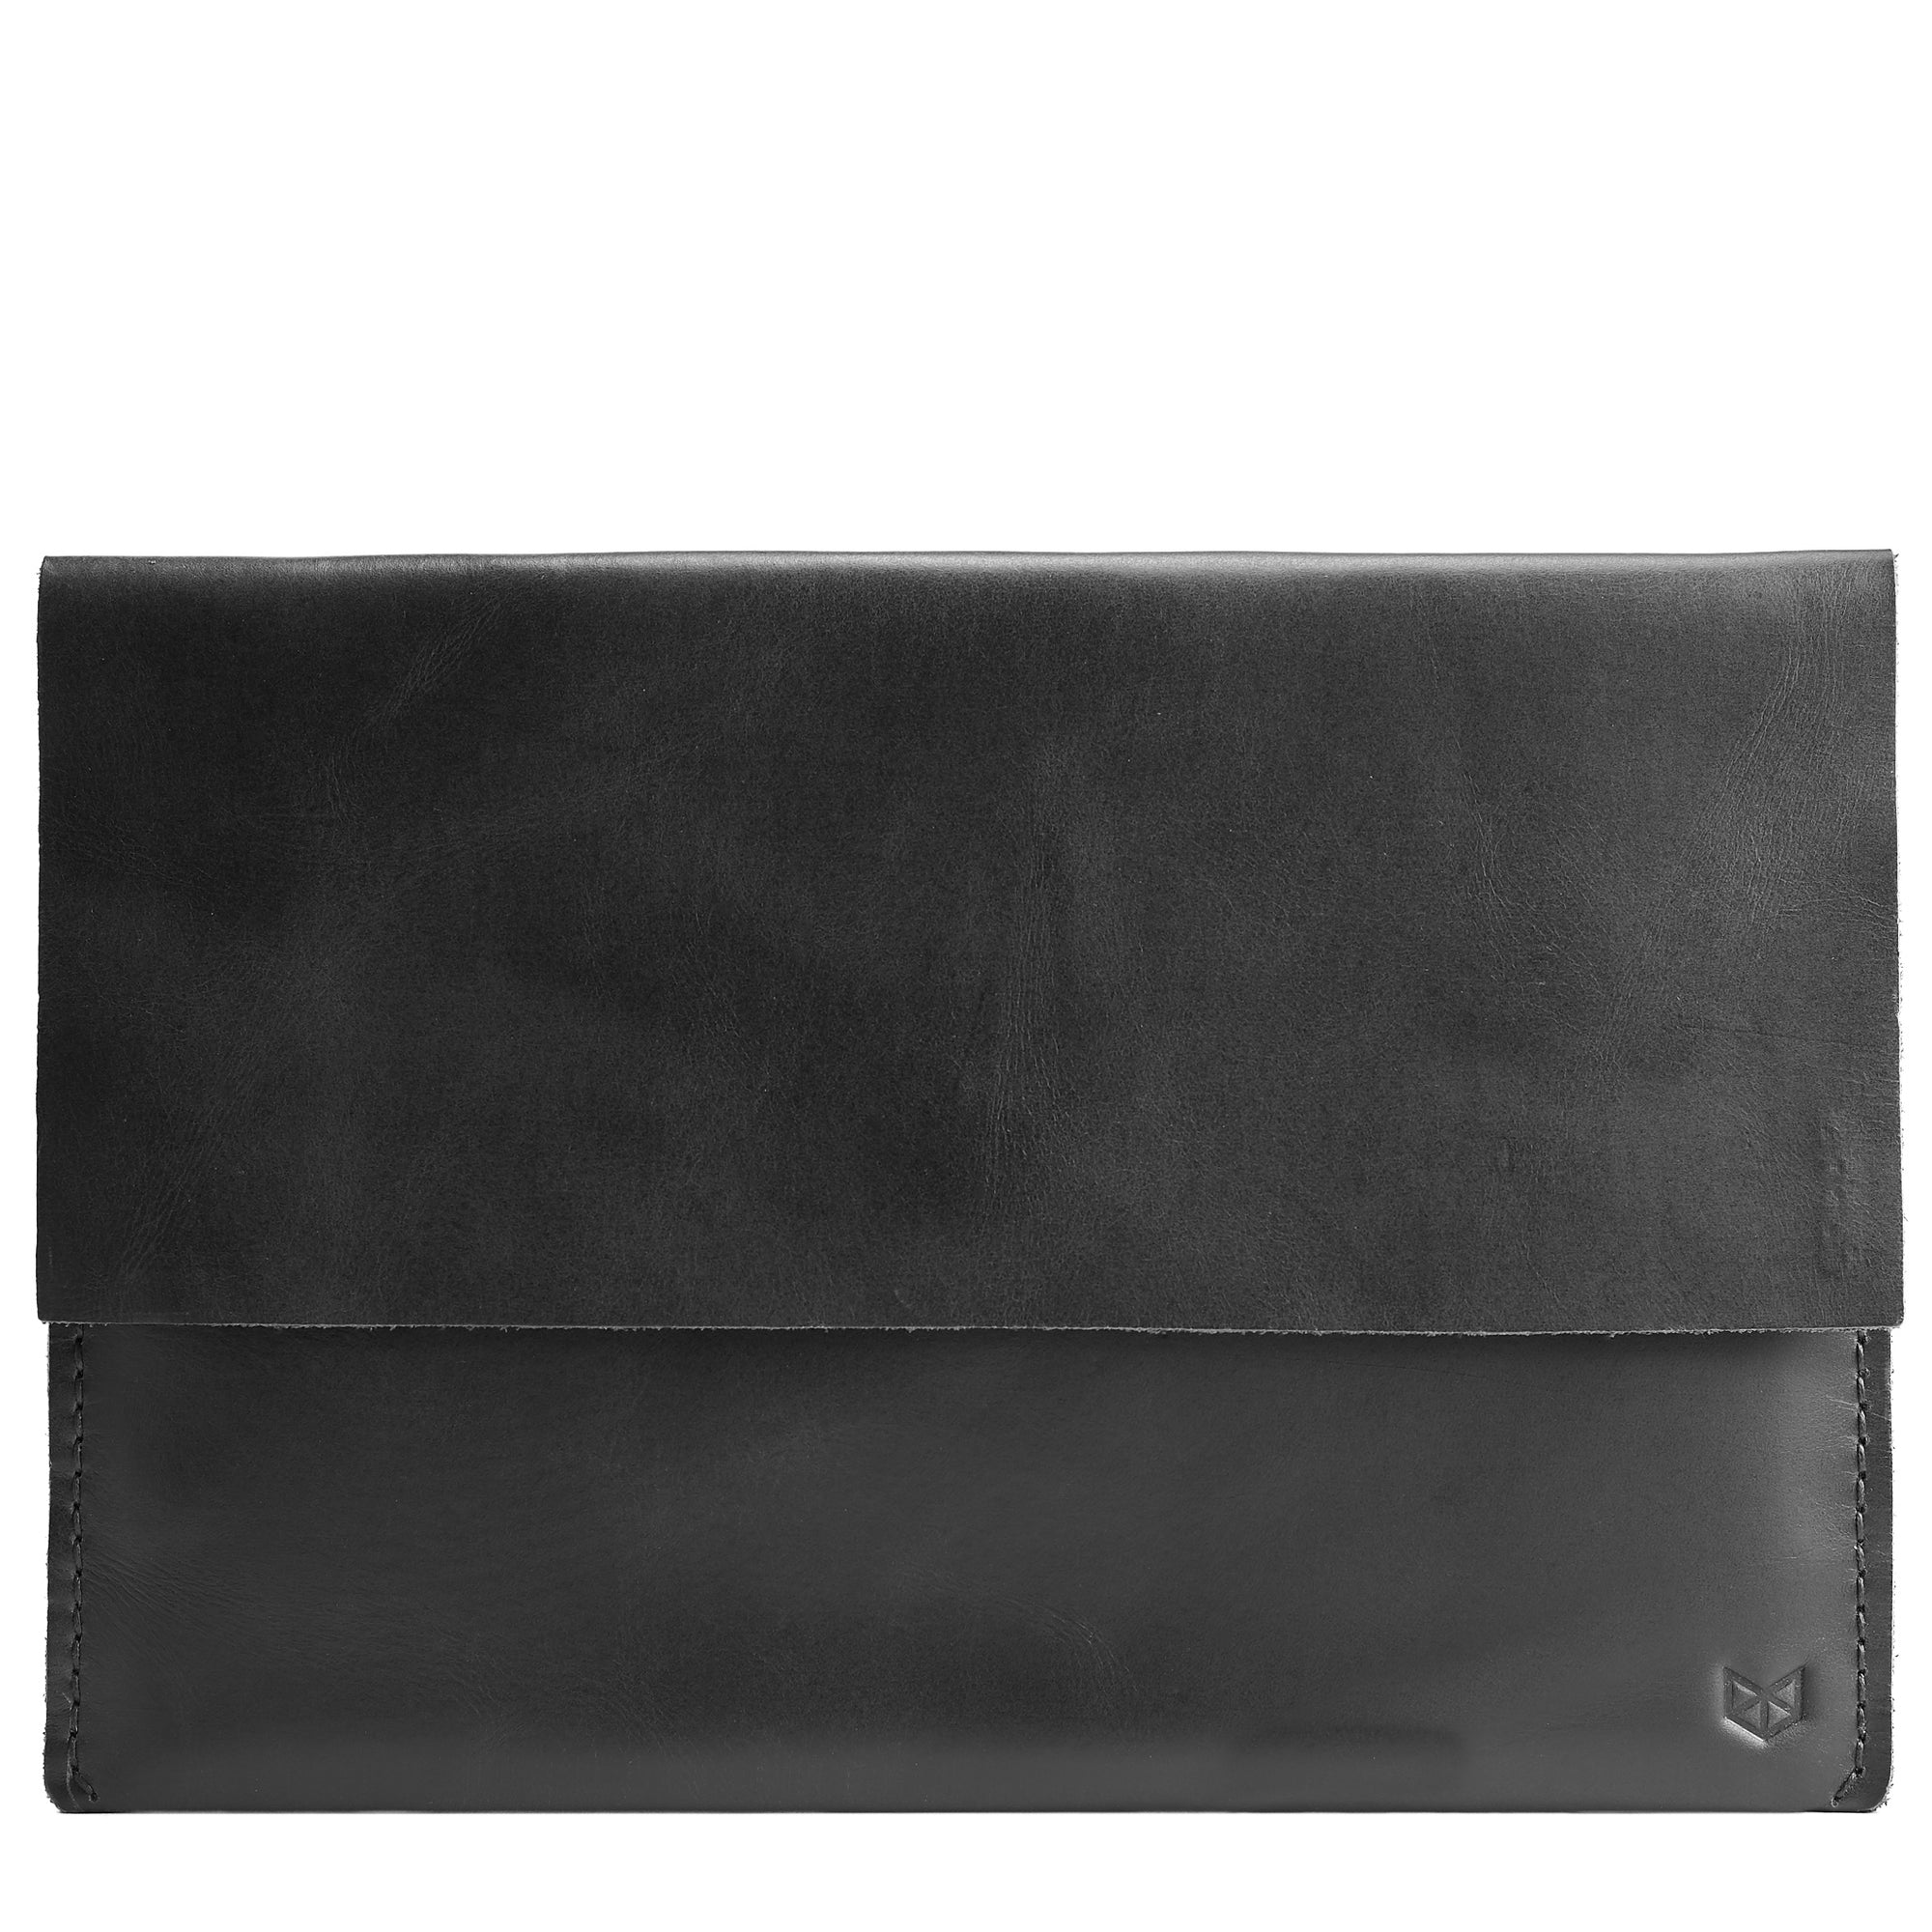 Cover. Black Leather Minial iPad Sleeve Case by Capra Leather